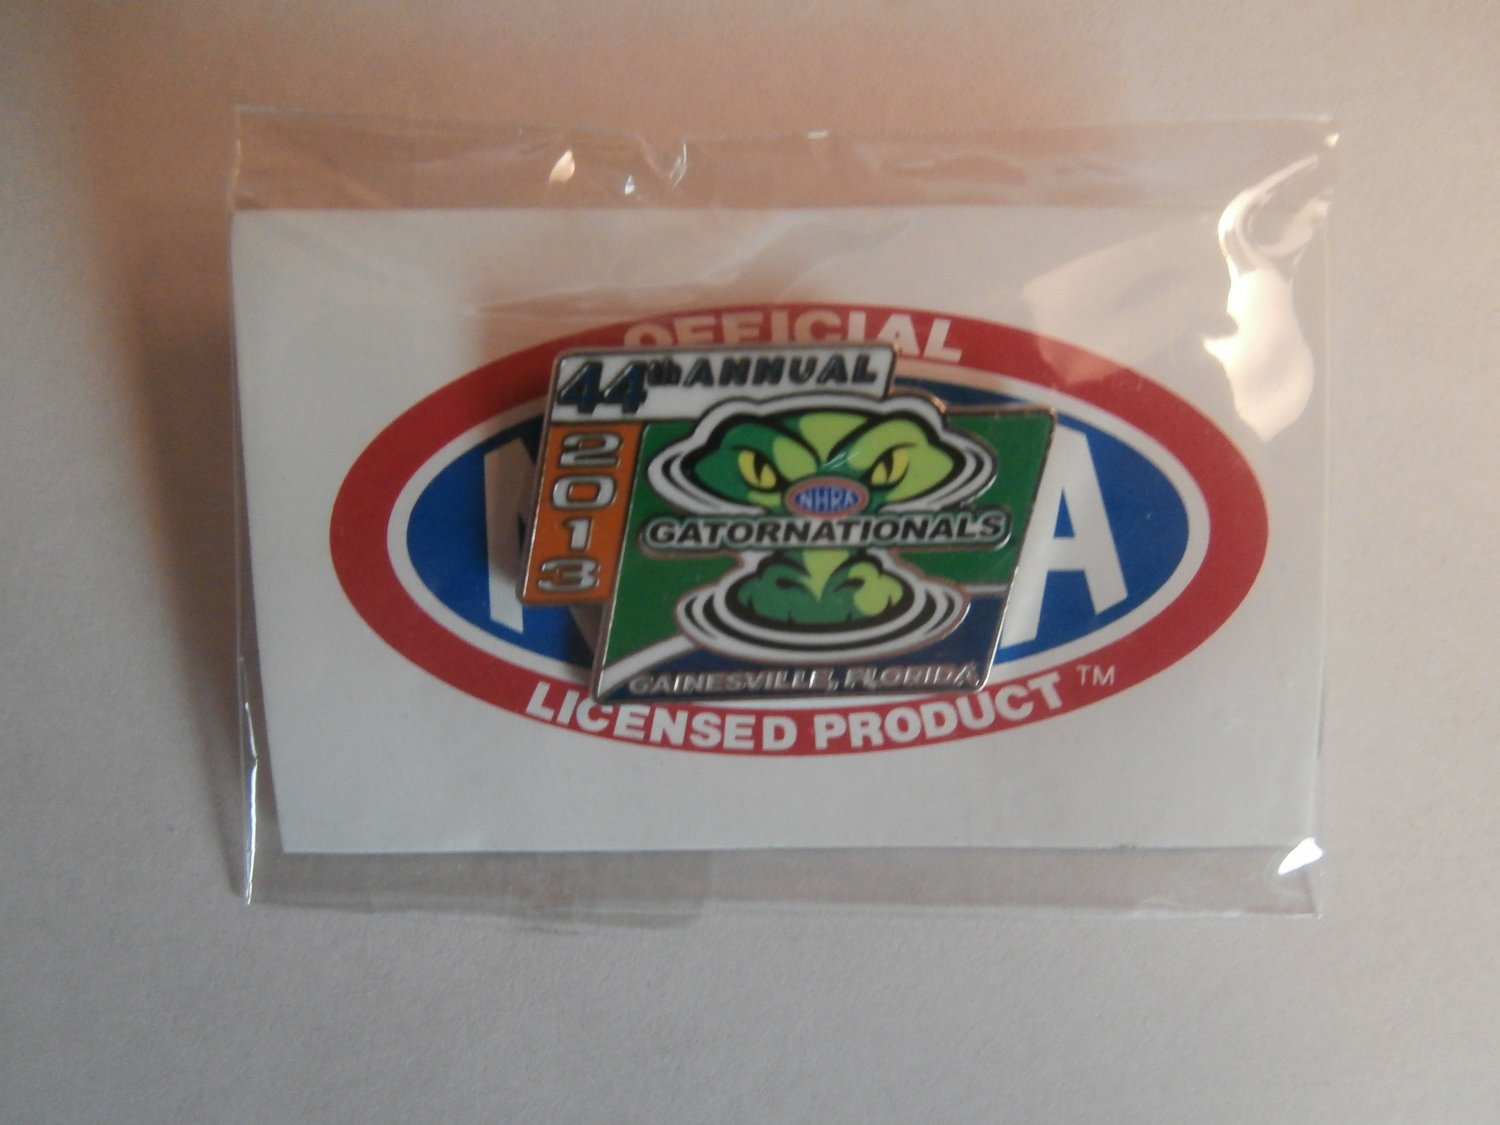 2013 NHRA Event Pin Gainesville #1